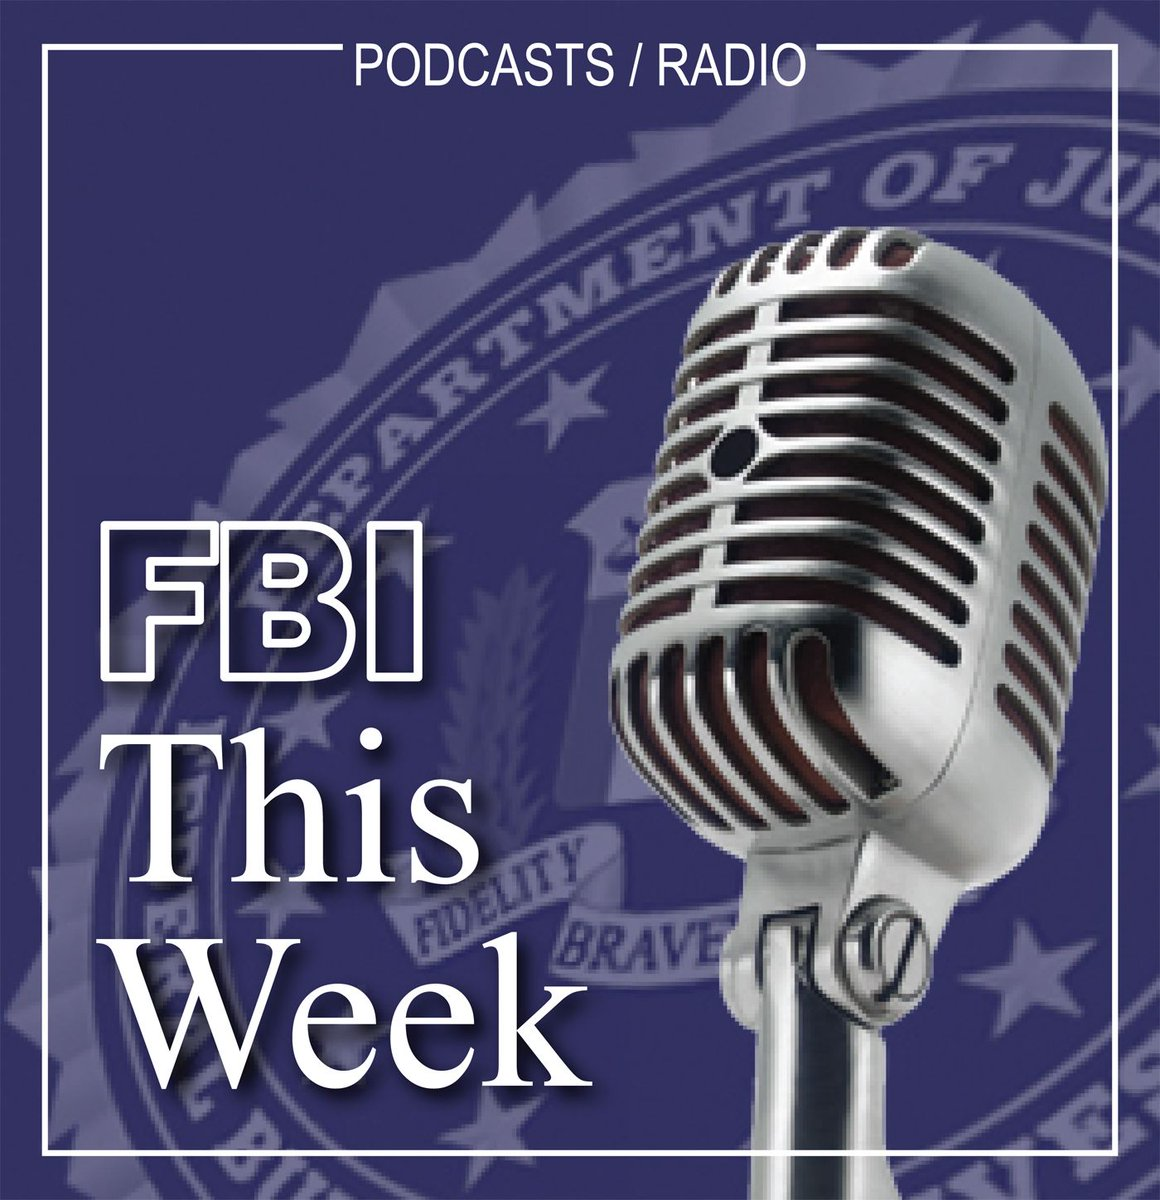 Catch up on #FBI #podcasts to learn about cases, initiatives and fugitives